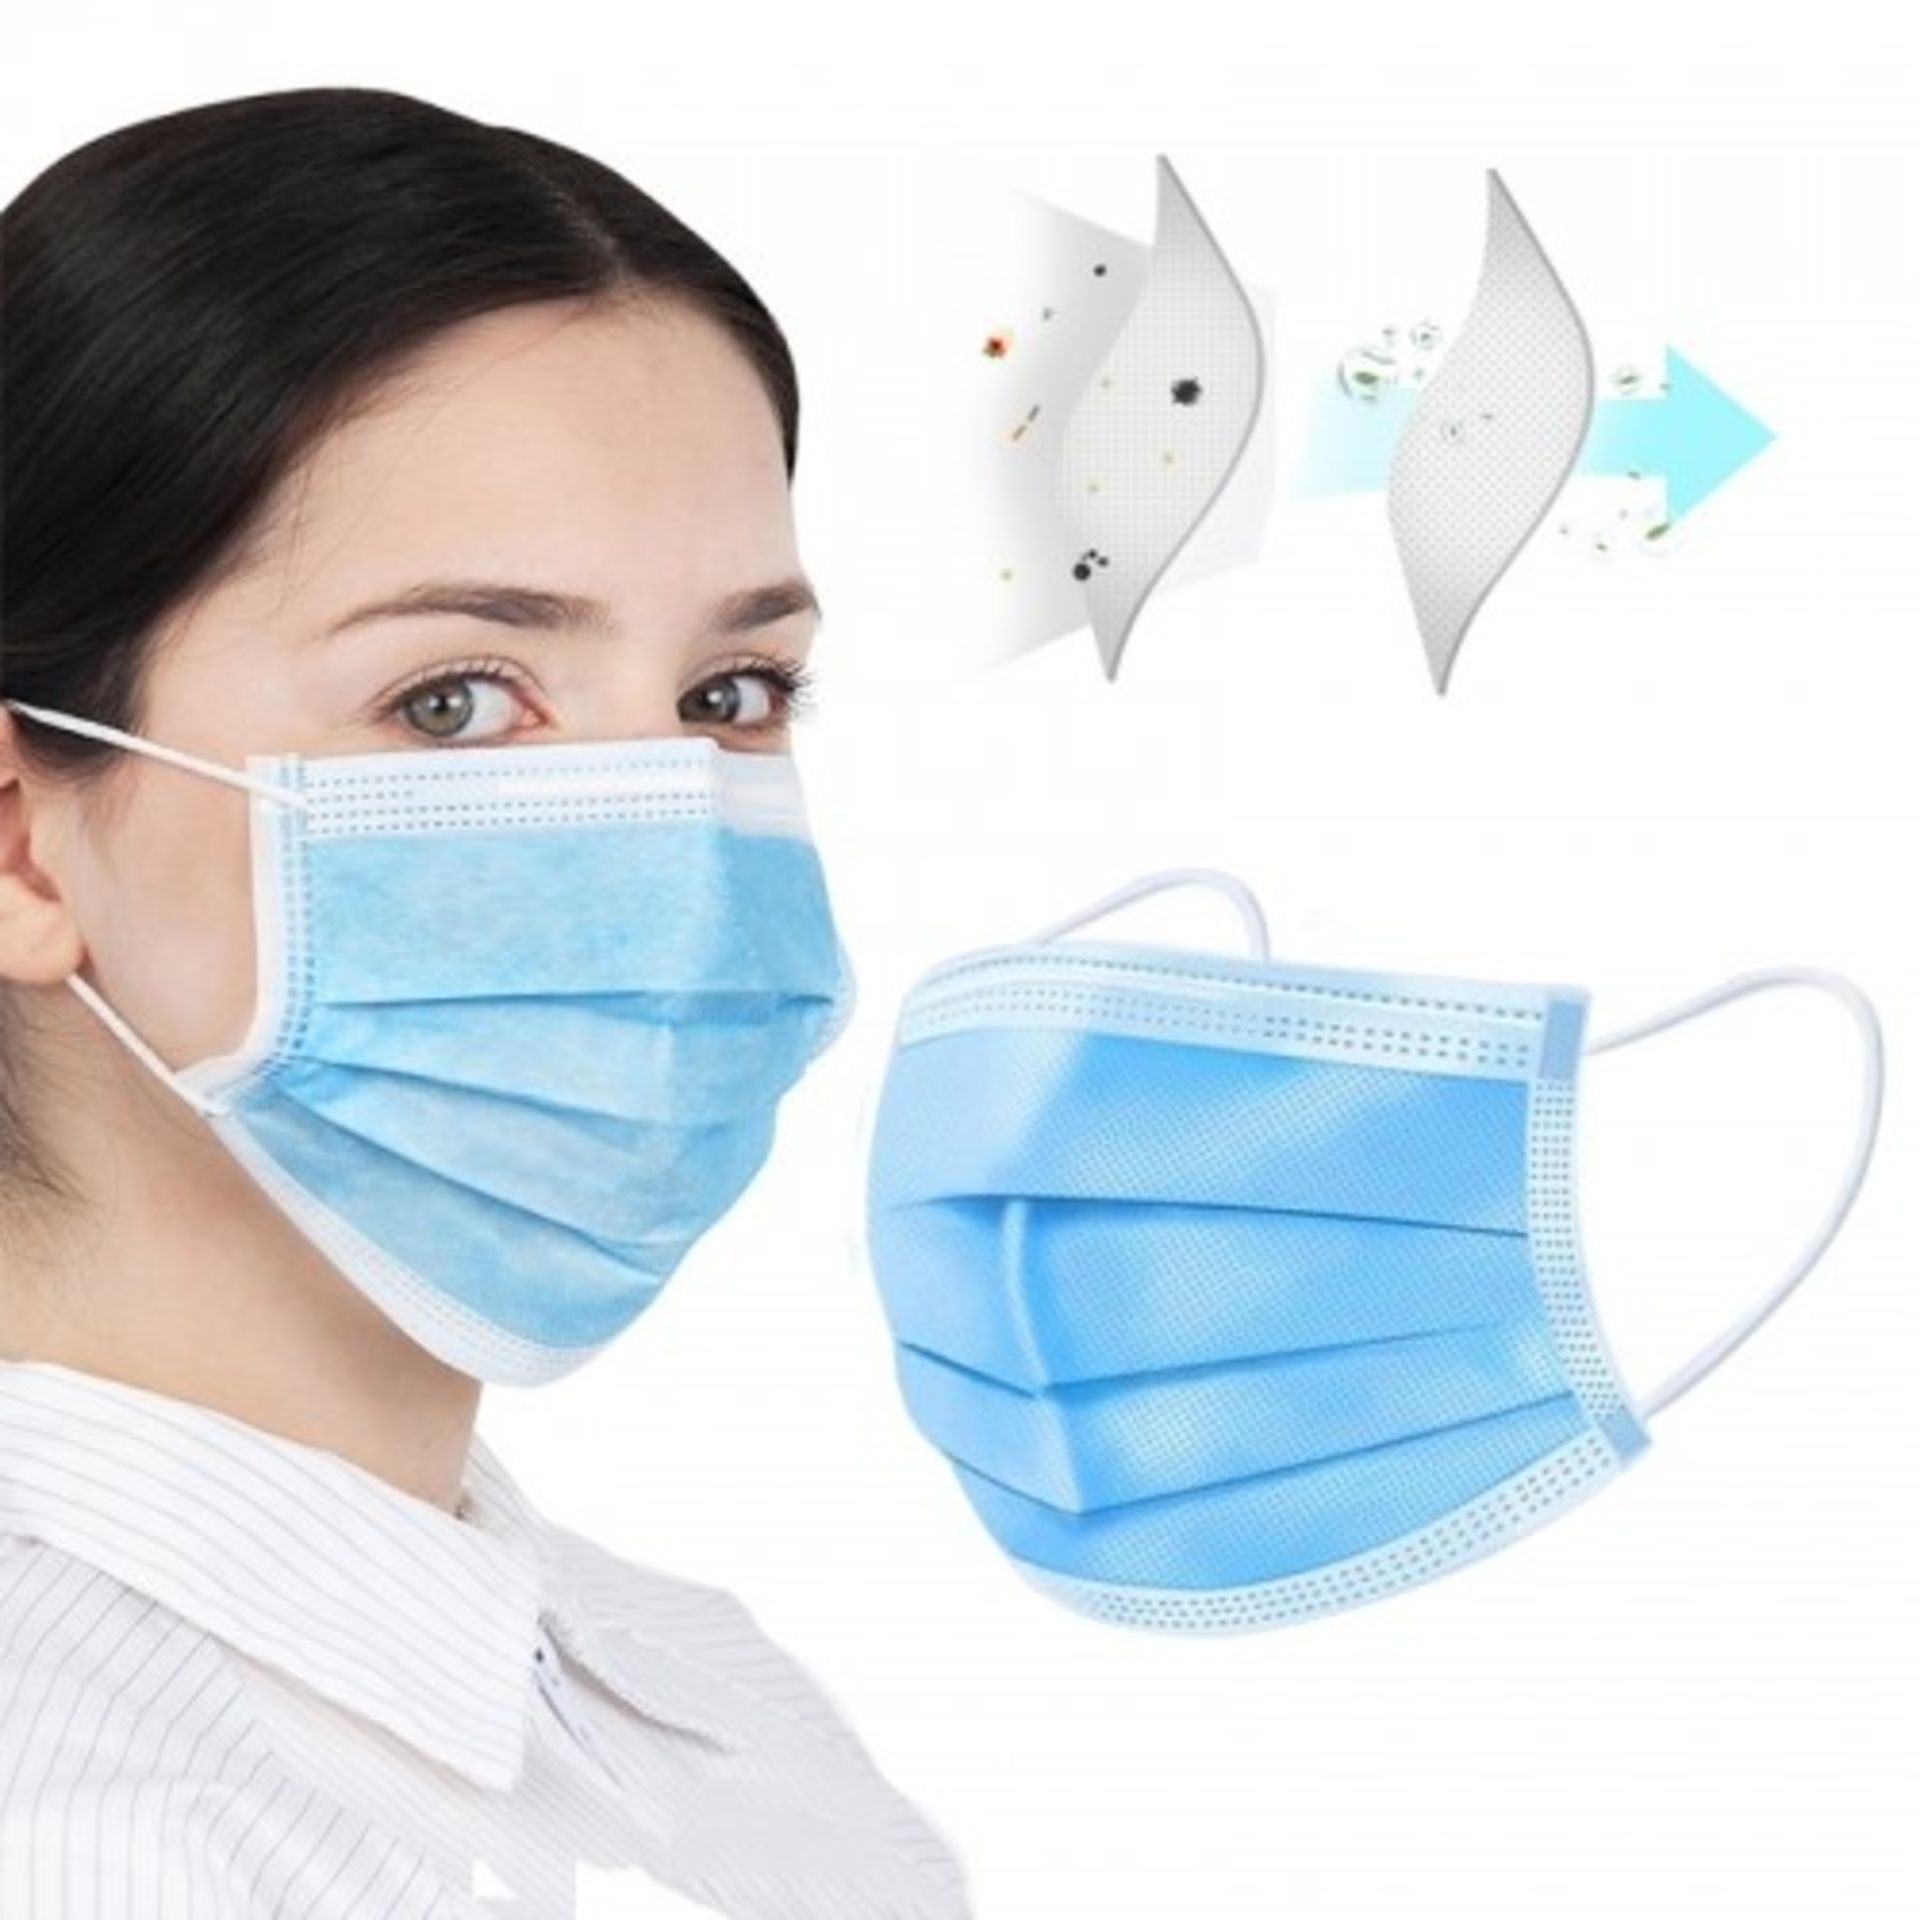 1,000 IN TOTAL 3 X PLY DISPOSABLE FACE MASKS *NO VAT* - Image 2 of 3